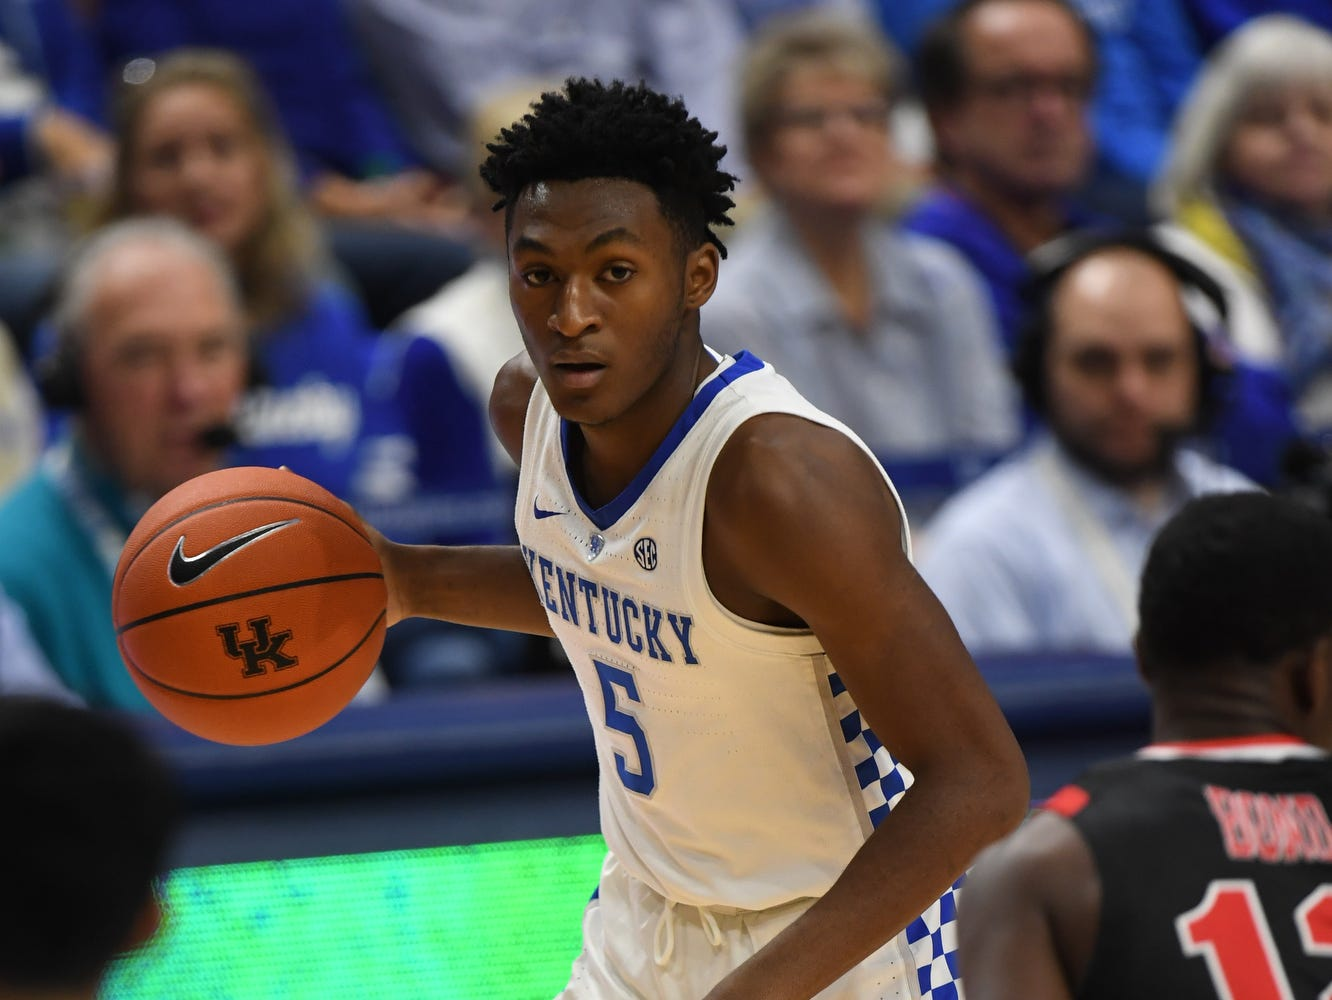 UK G Immanuel Quickley controls the ball during the University of Kentucky mens basketball game against VMI at Rupp Arena in Lexington, Kentucky on Sunday, November 18, 2018.